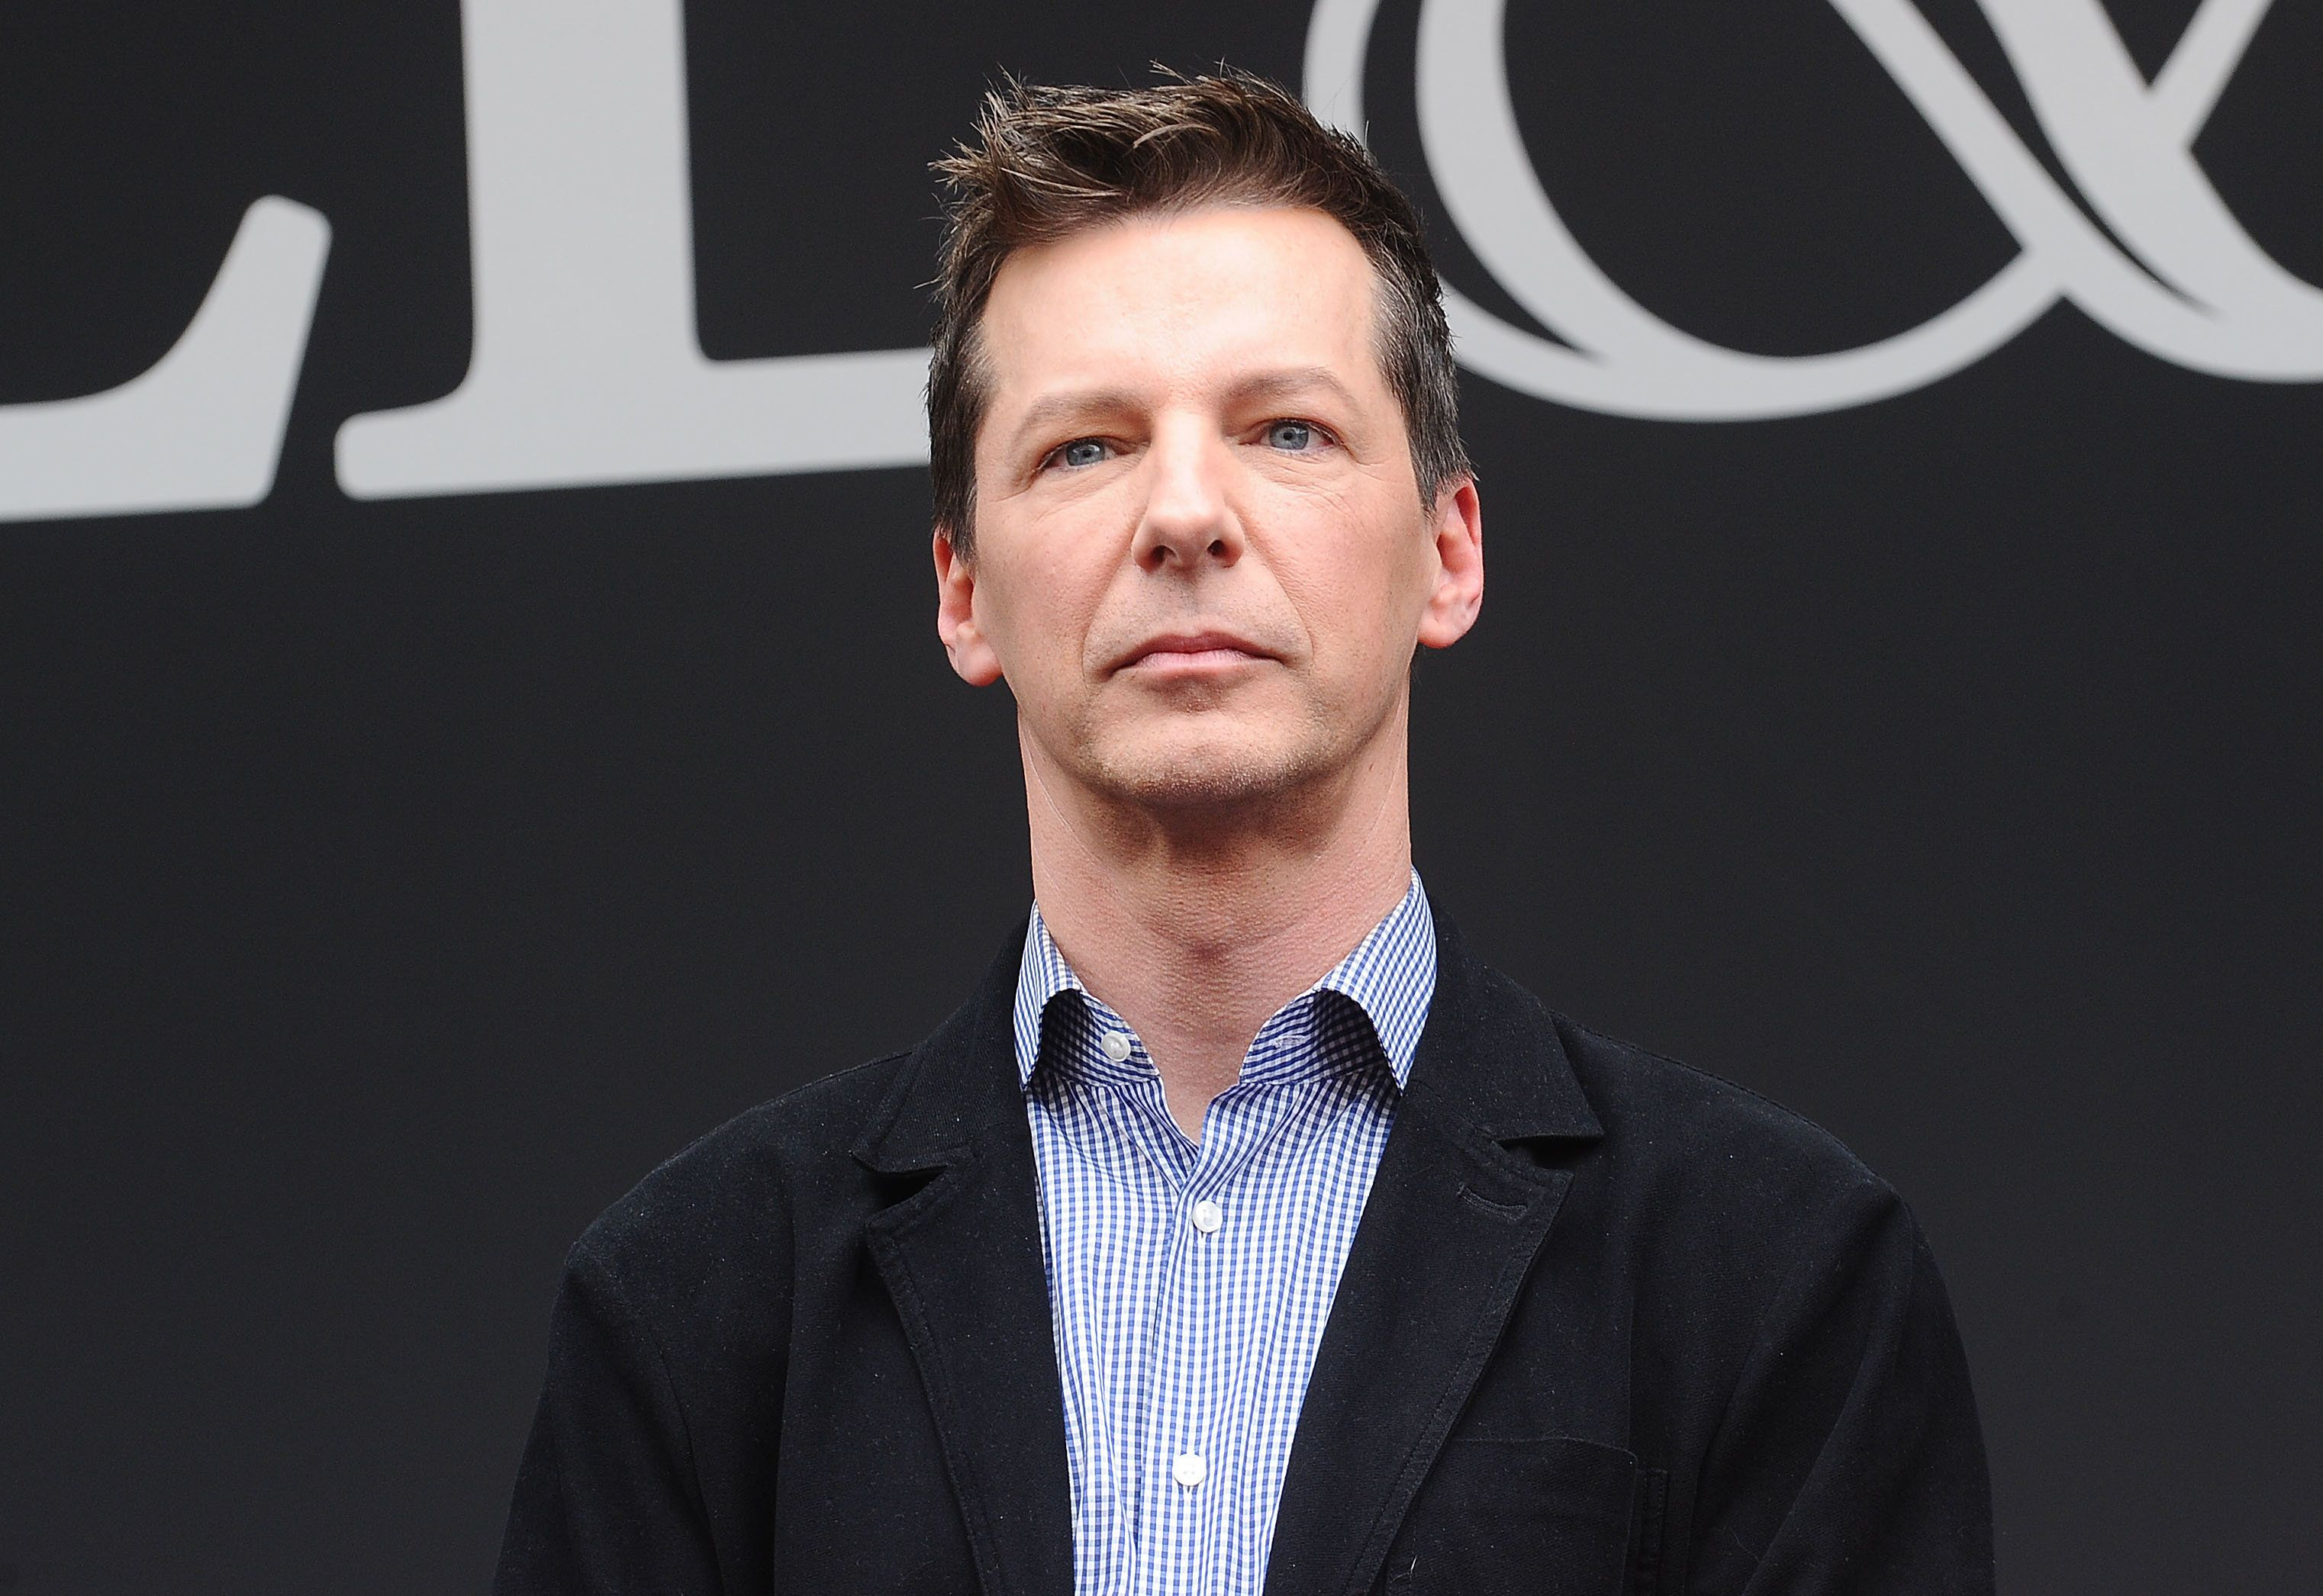 Actor Sean Hayes said his mom is now extremely supportive despite her initial response to hearing...